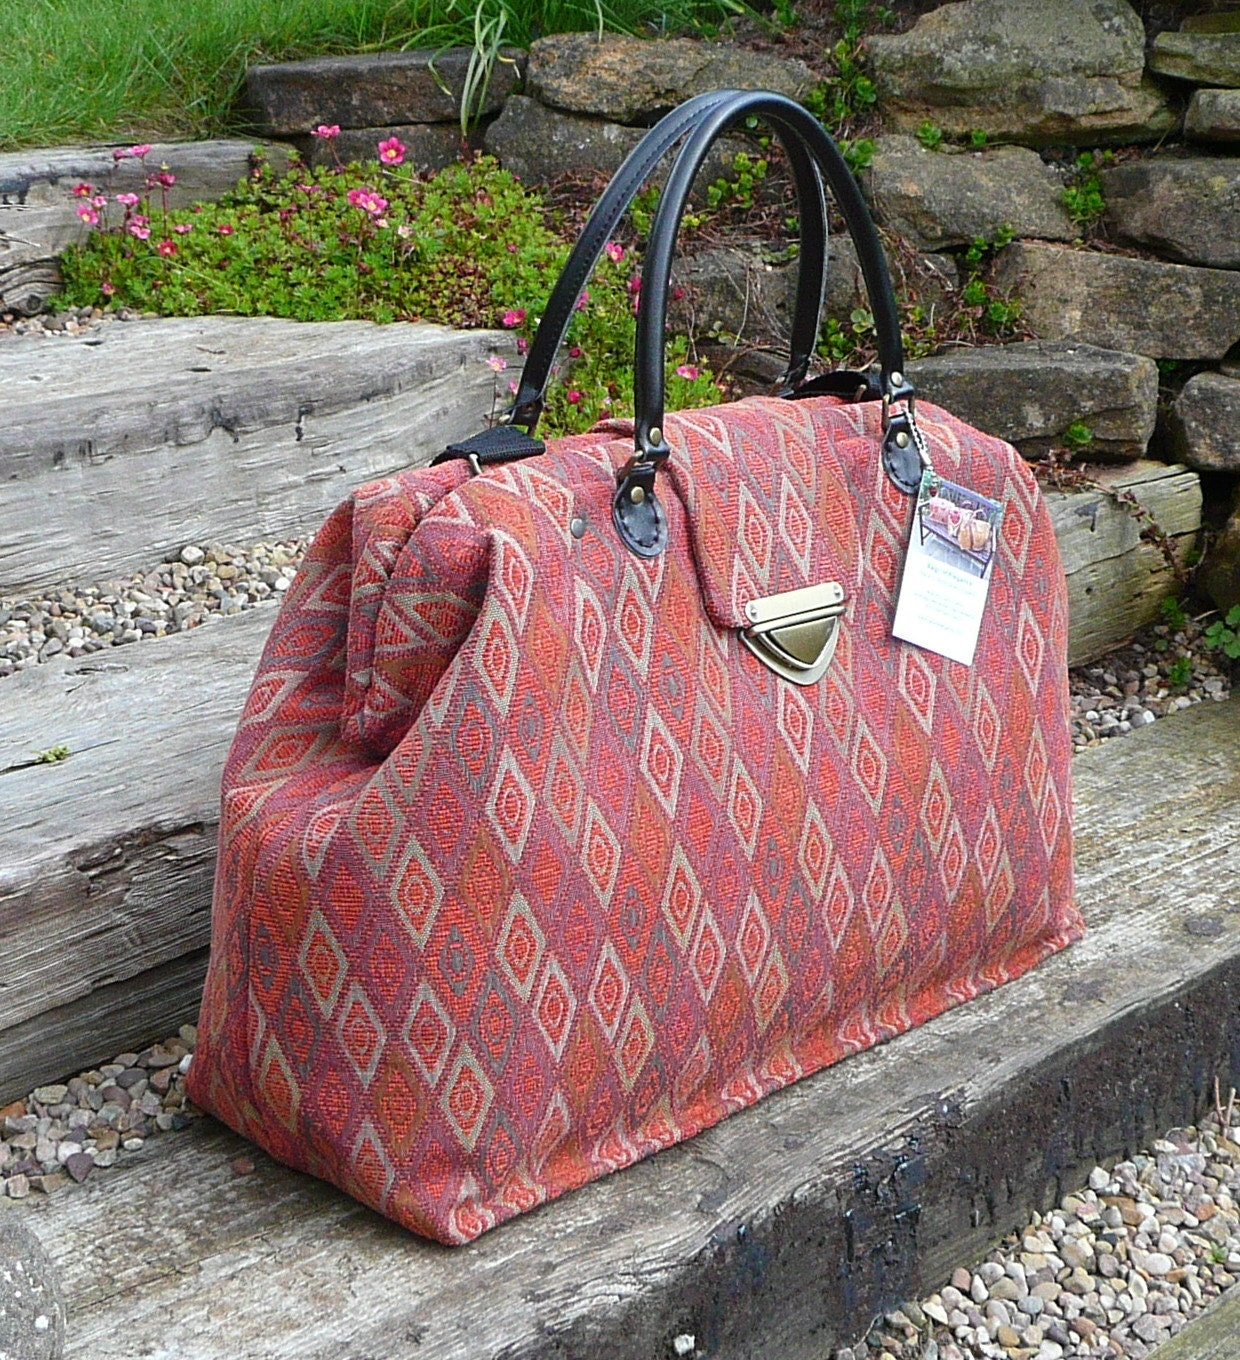 Carpet Bag Weekender Bag Overnight Bag Mary By Bagsofelegance